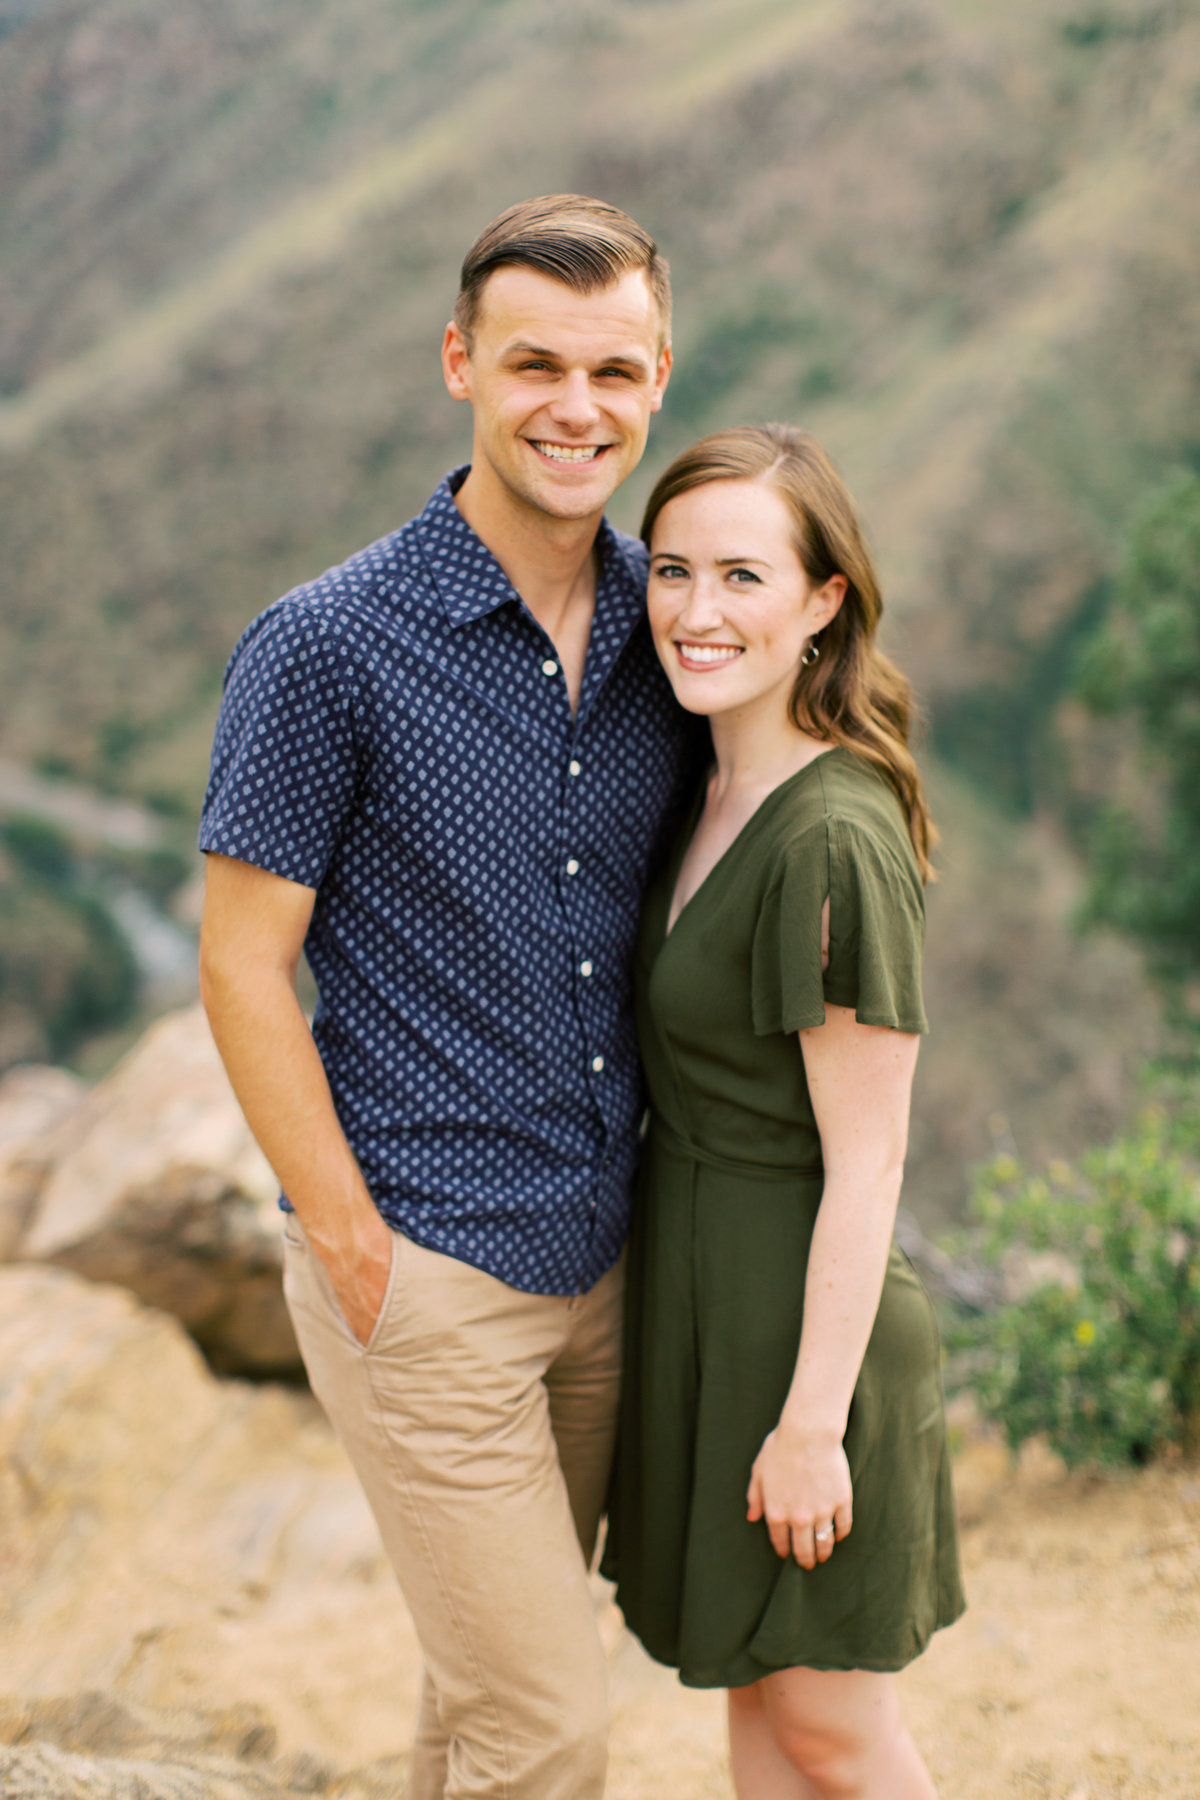 KristinPatrick_Engagement_July312019_21